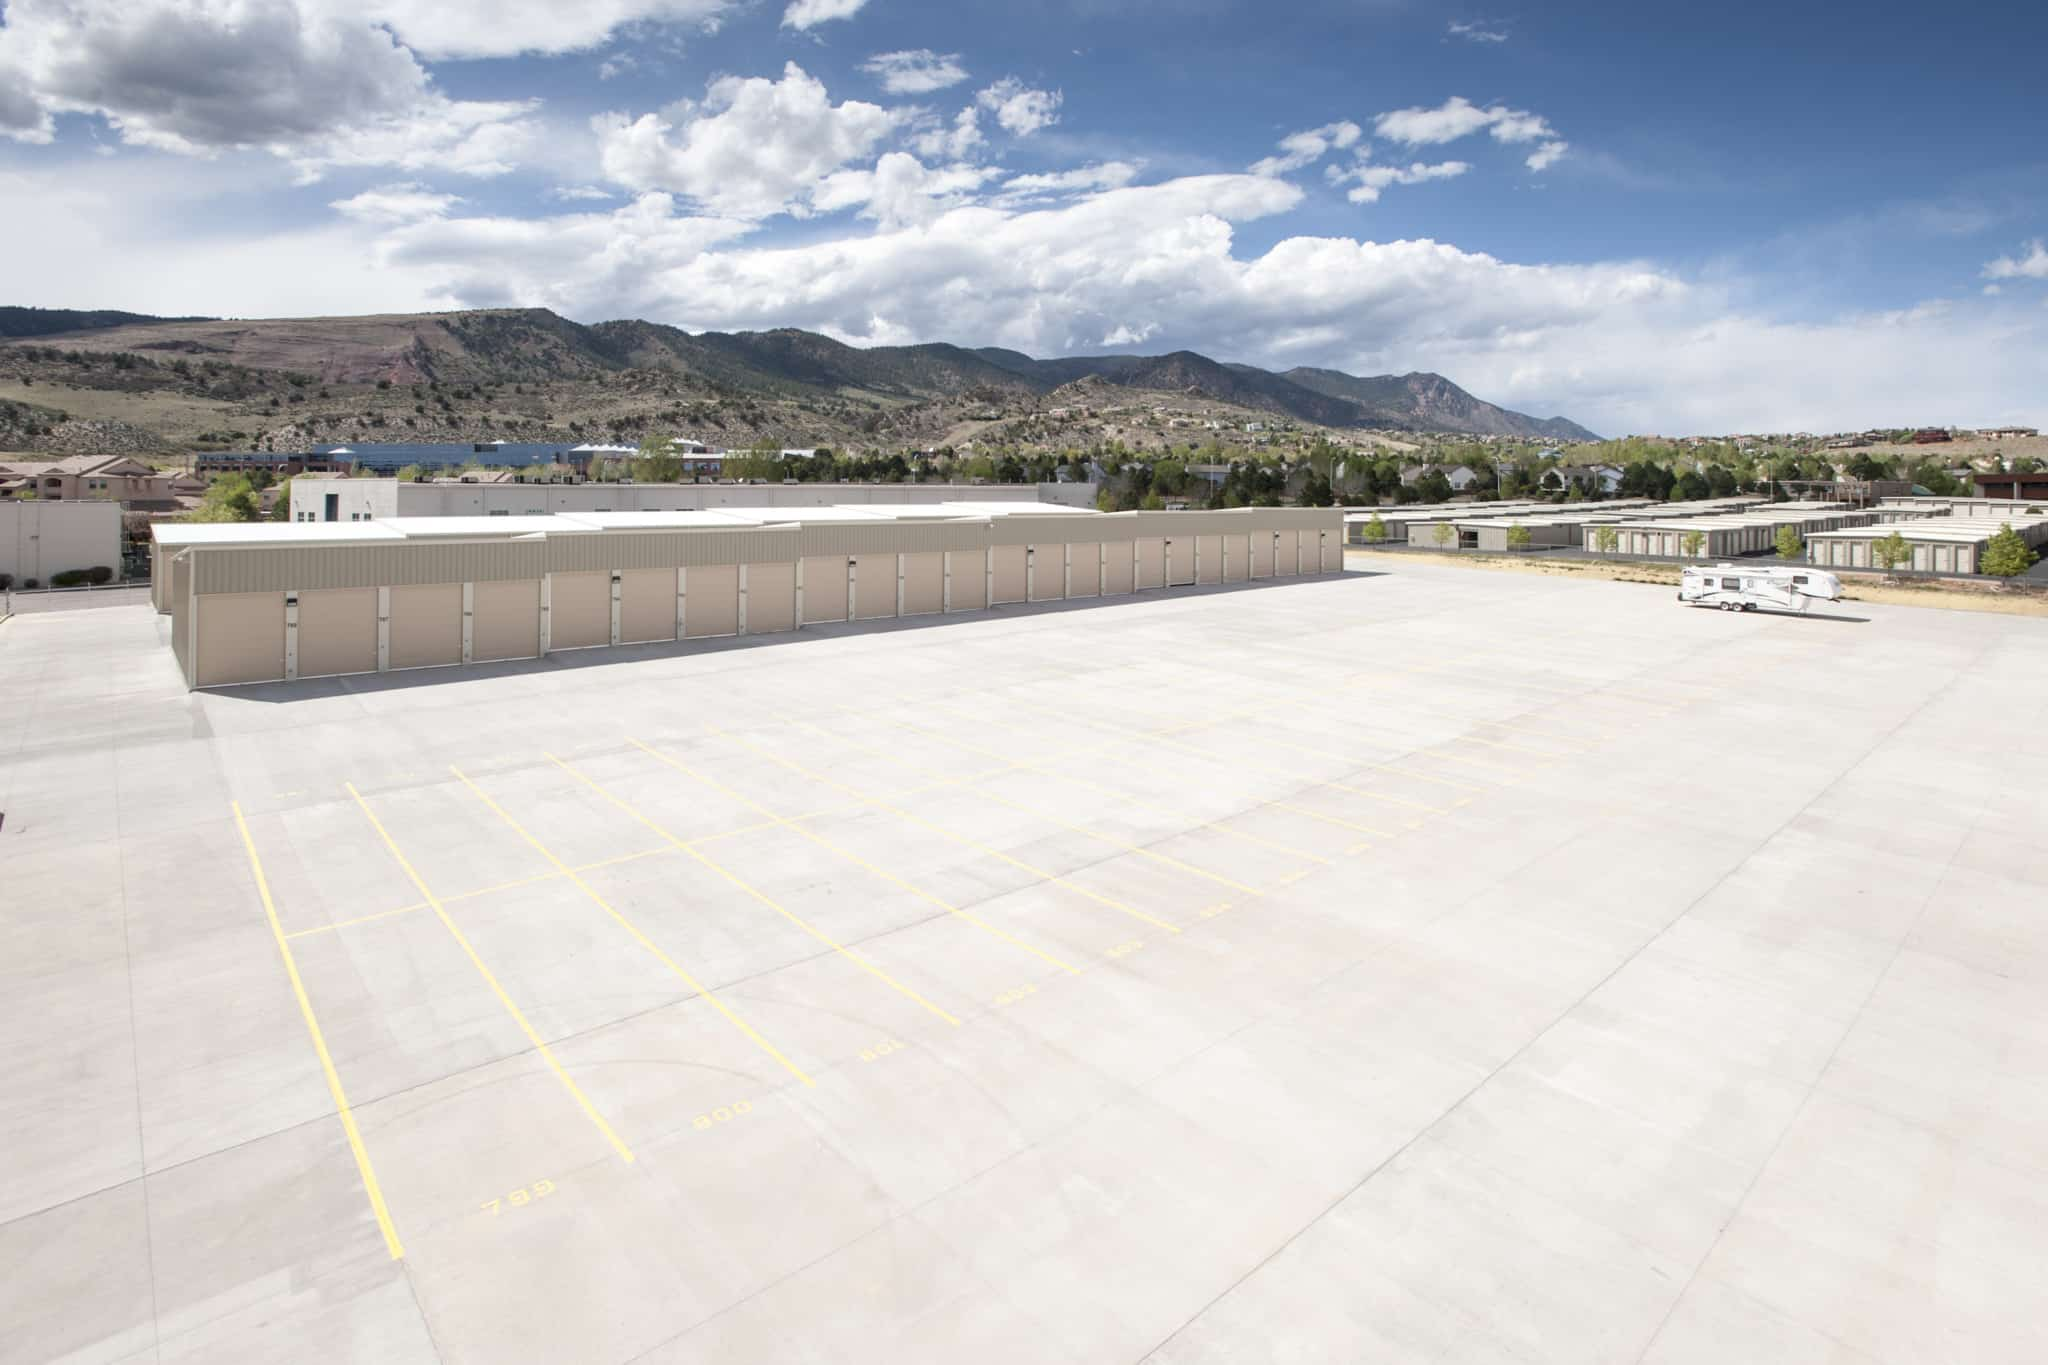 FGS Commercial new build of storage units near Colorado Springs, Colorado